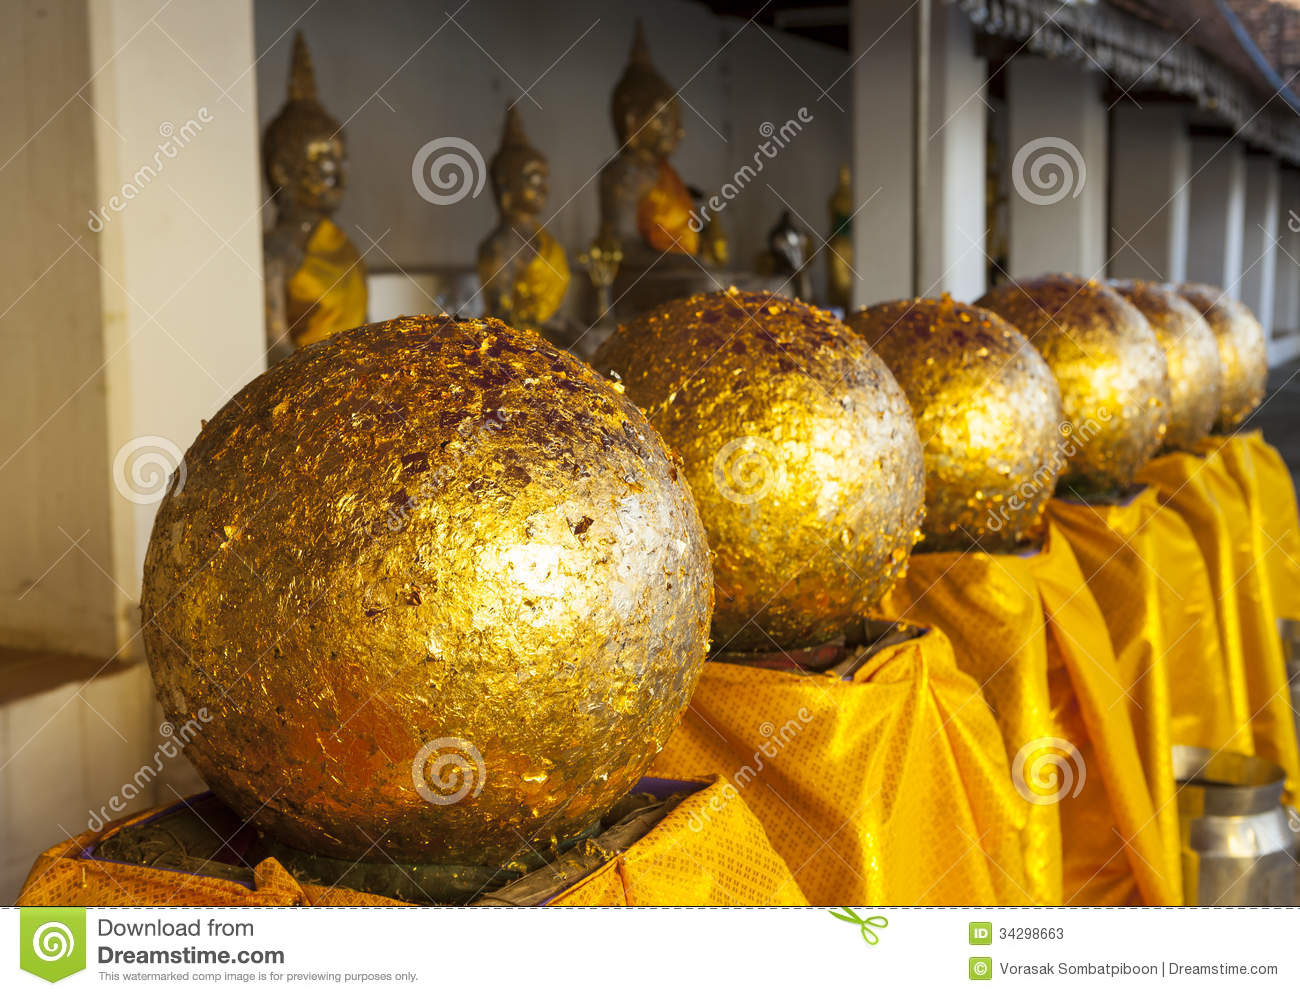 The series of golden ball in wat pratat chair hang nan province